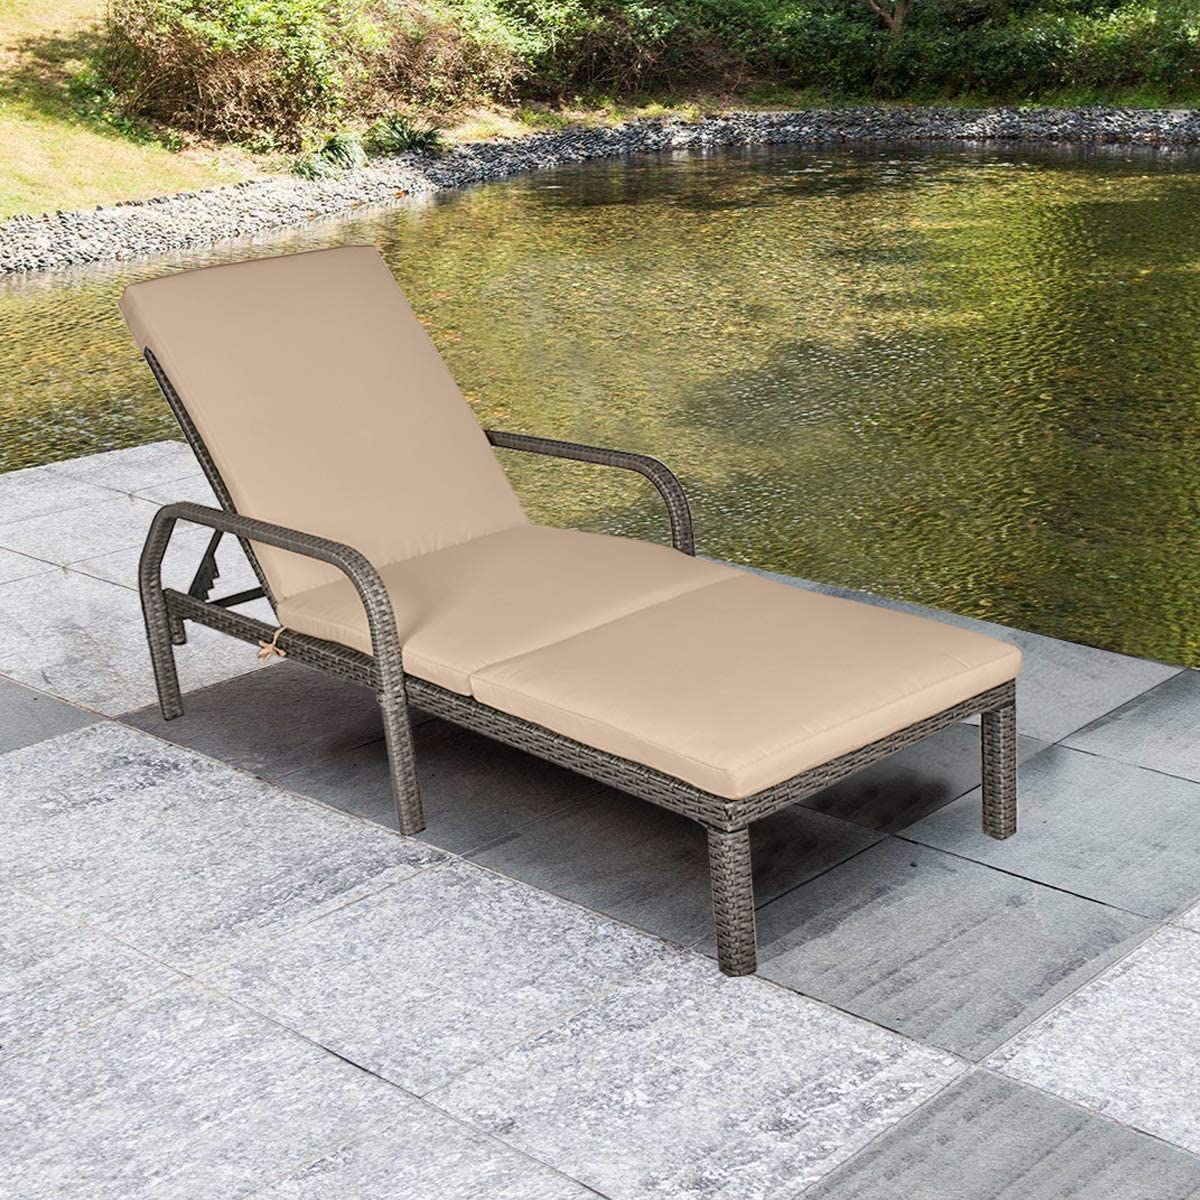 MAGIC UNION Patio Rattan Adjustable Wicker Chaise Lounge with Cushions Garden Furniture Outdoor Pool Side Chair